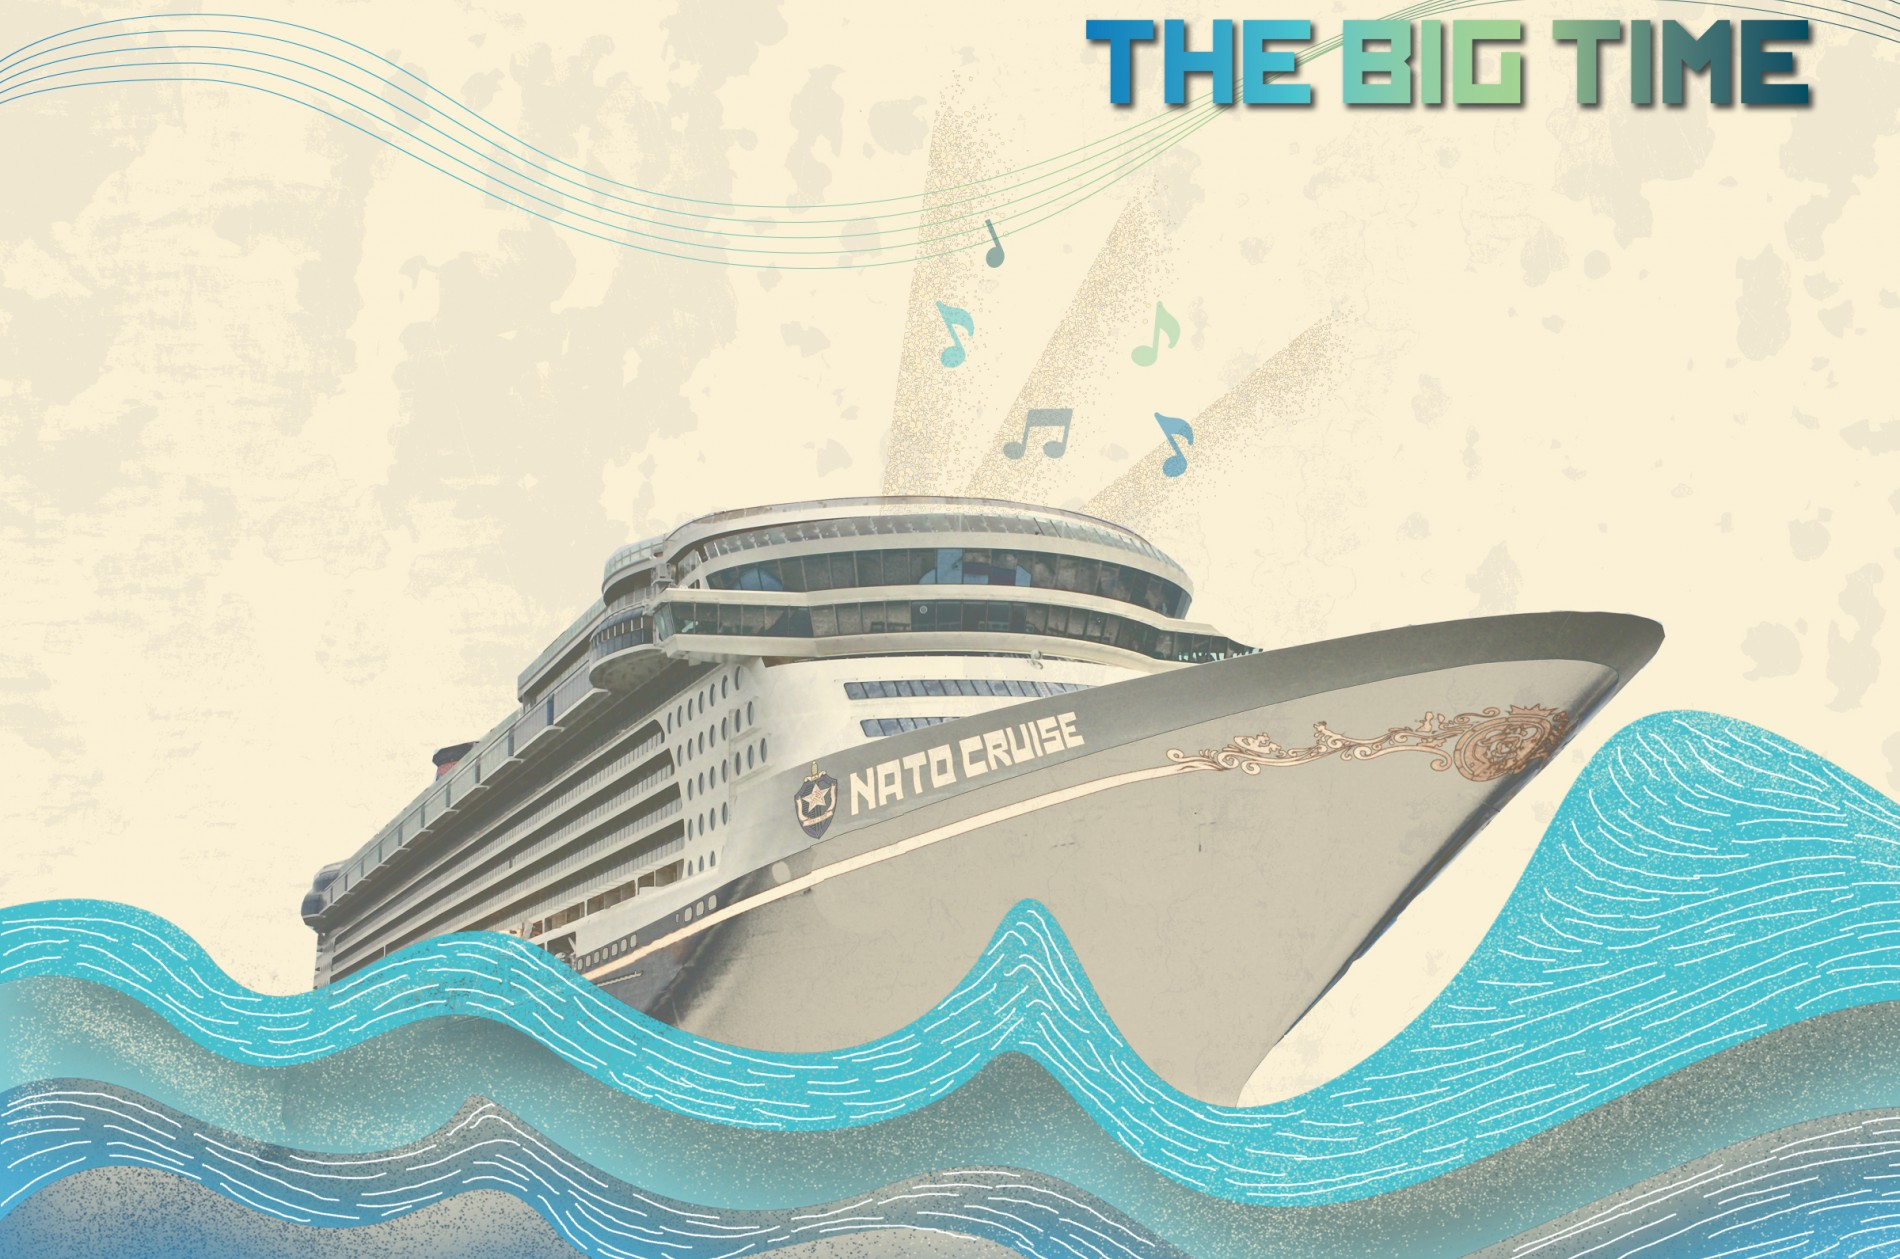 The Big Time NATO cruise ship